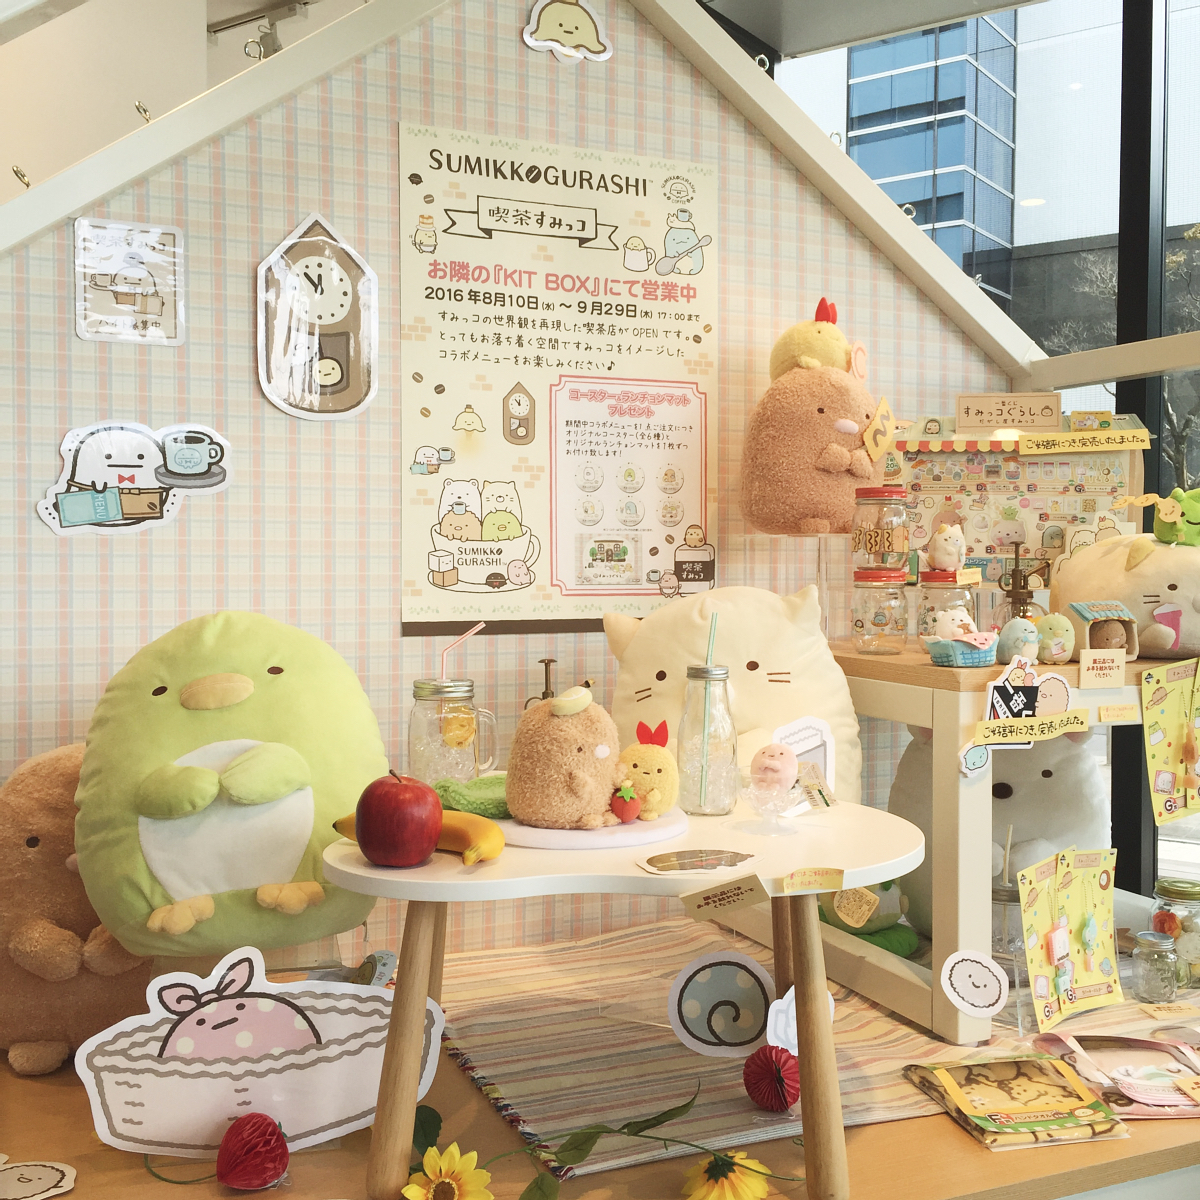 sumikko-gurashi-cafe-kit-box-kotobukiya-cafe-7